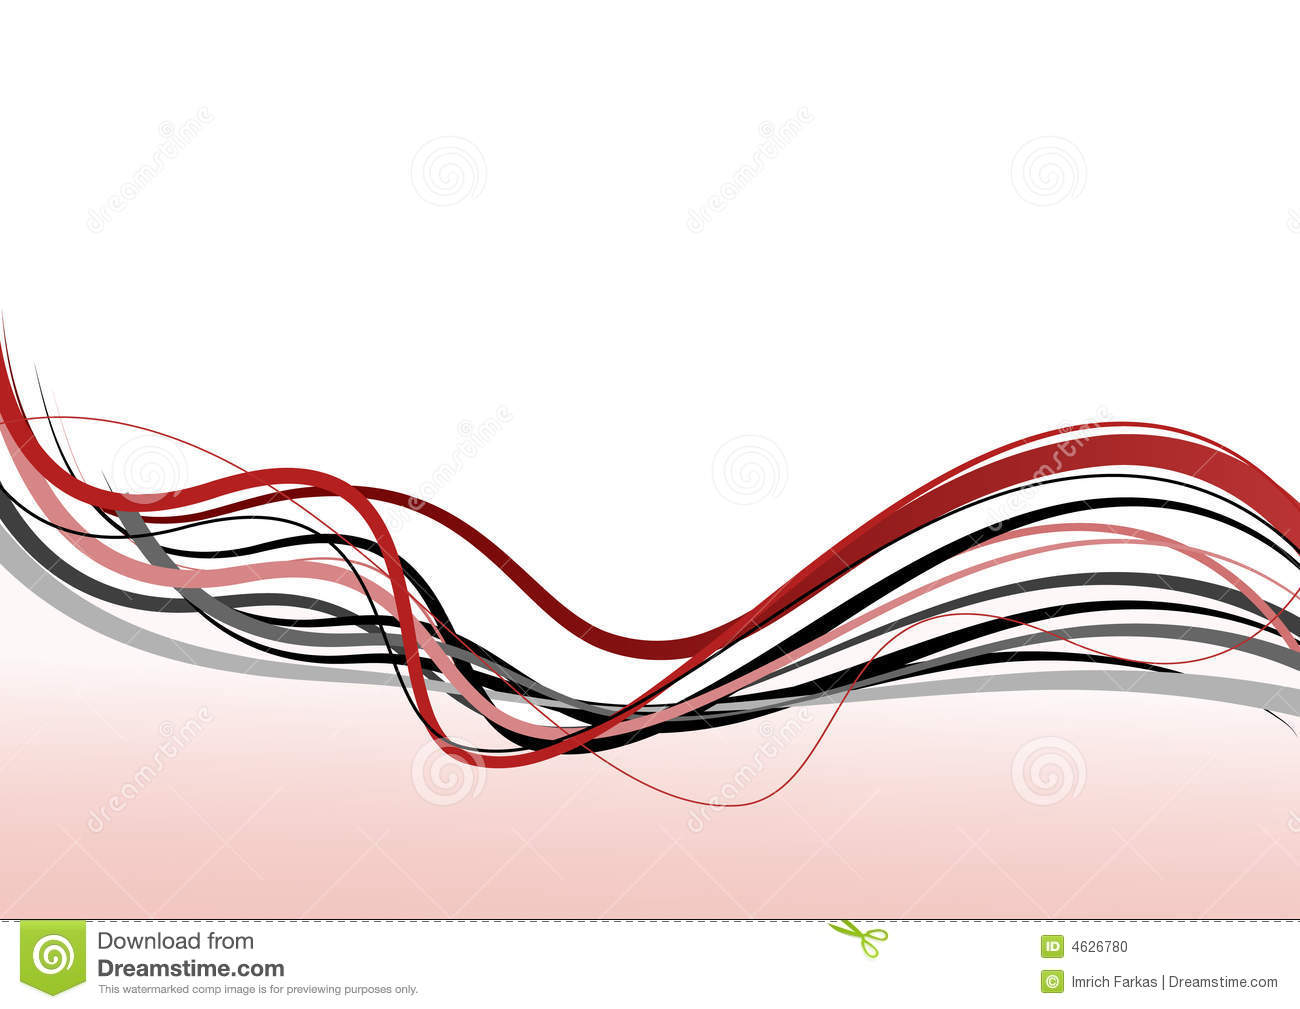 Vector Drawing Lines Download : Line vector graphics images design graphic